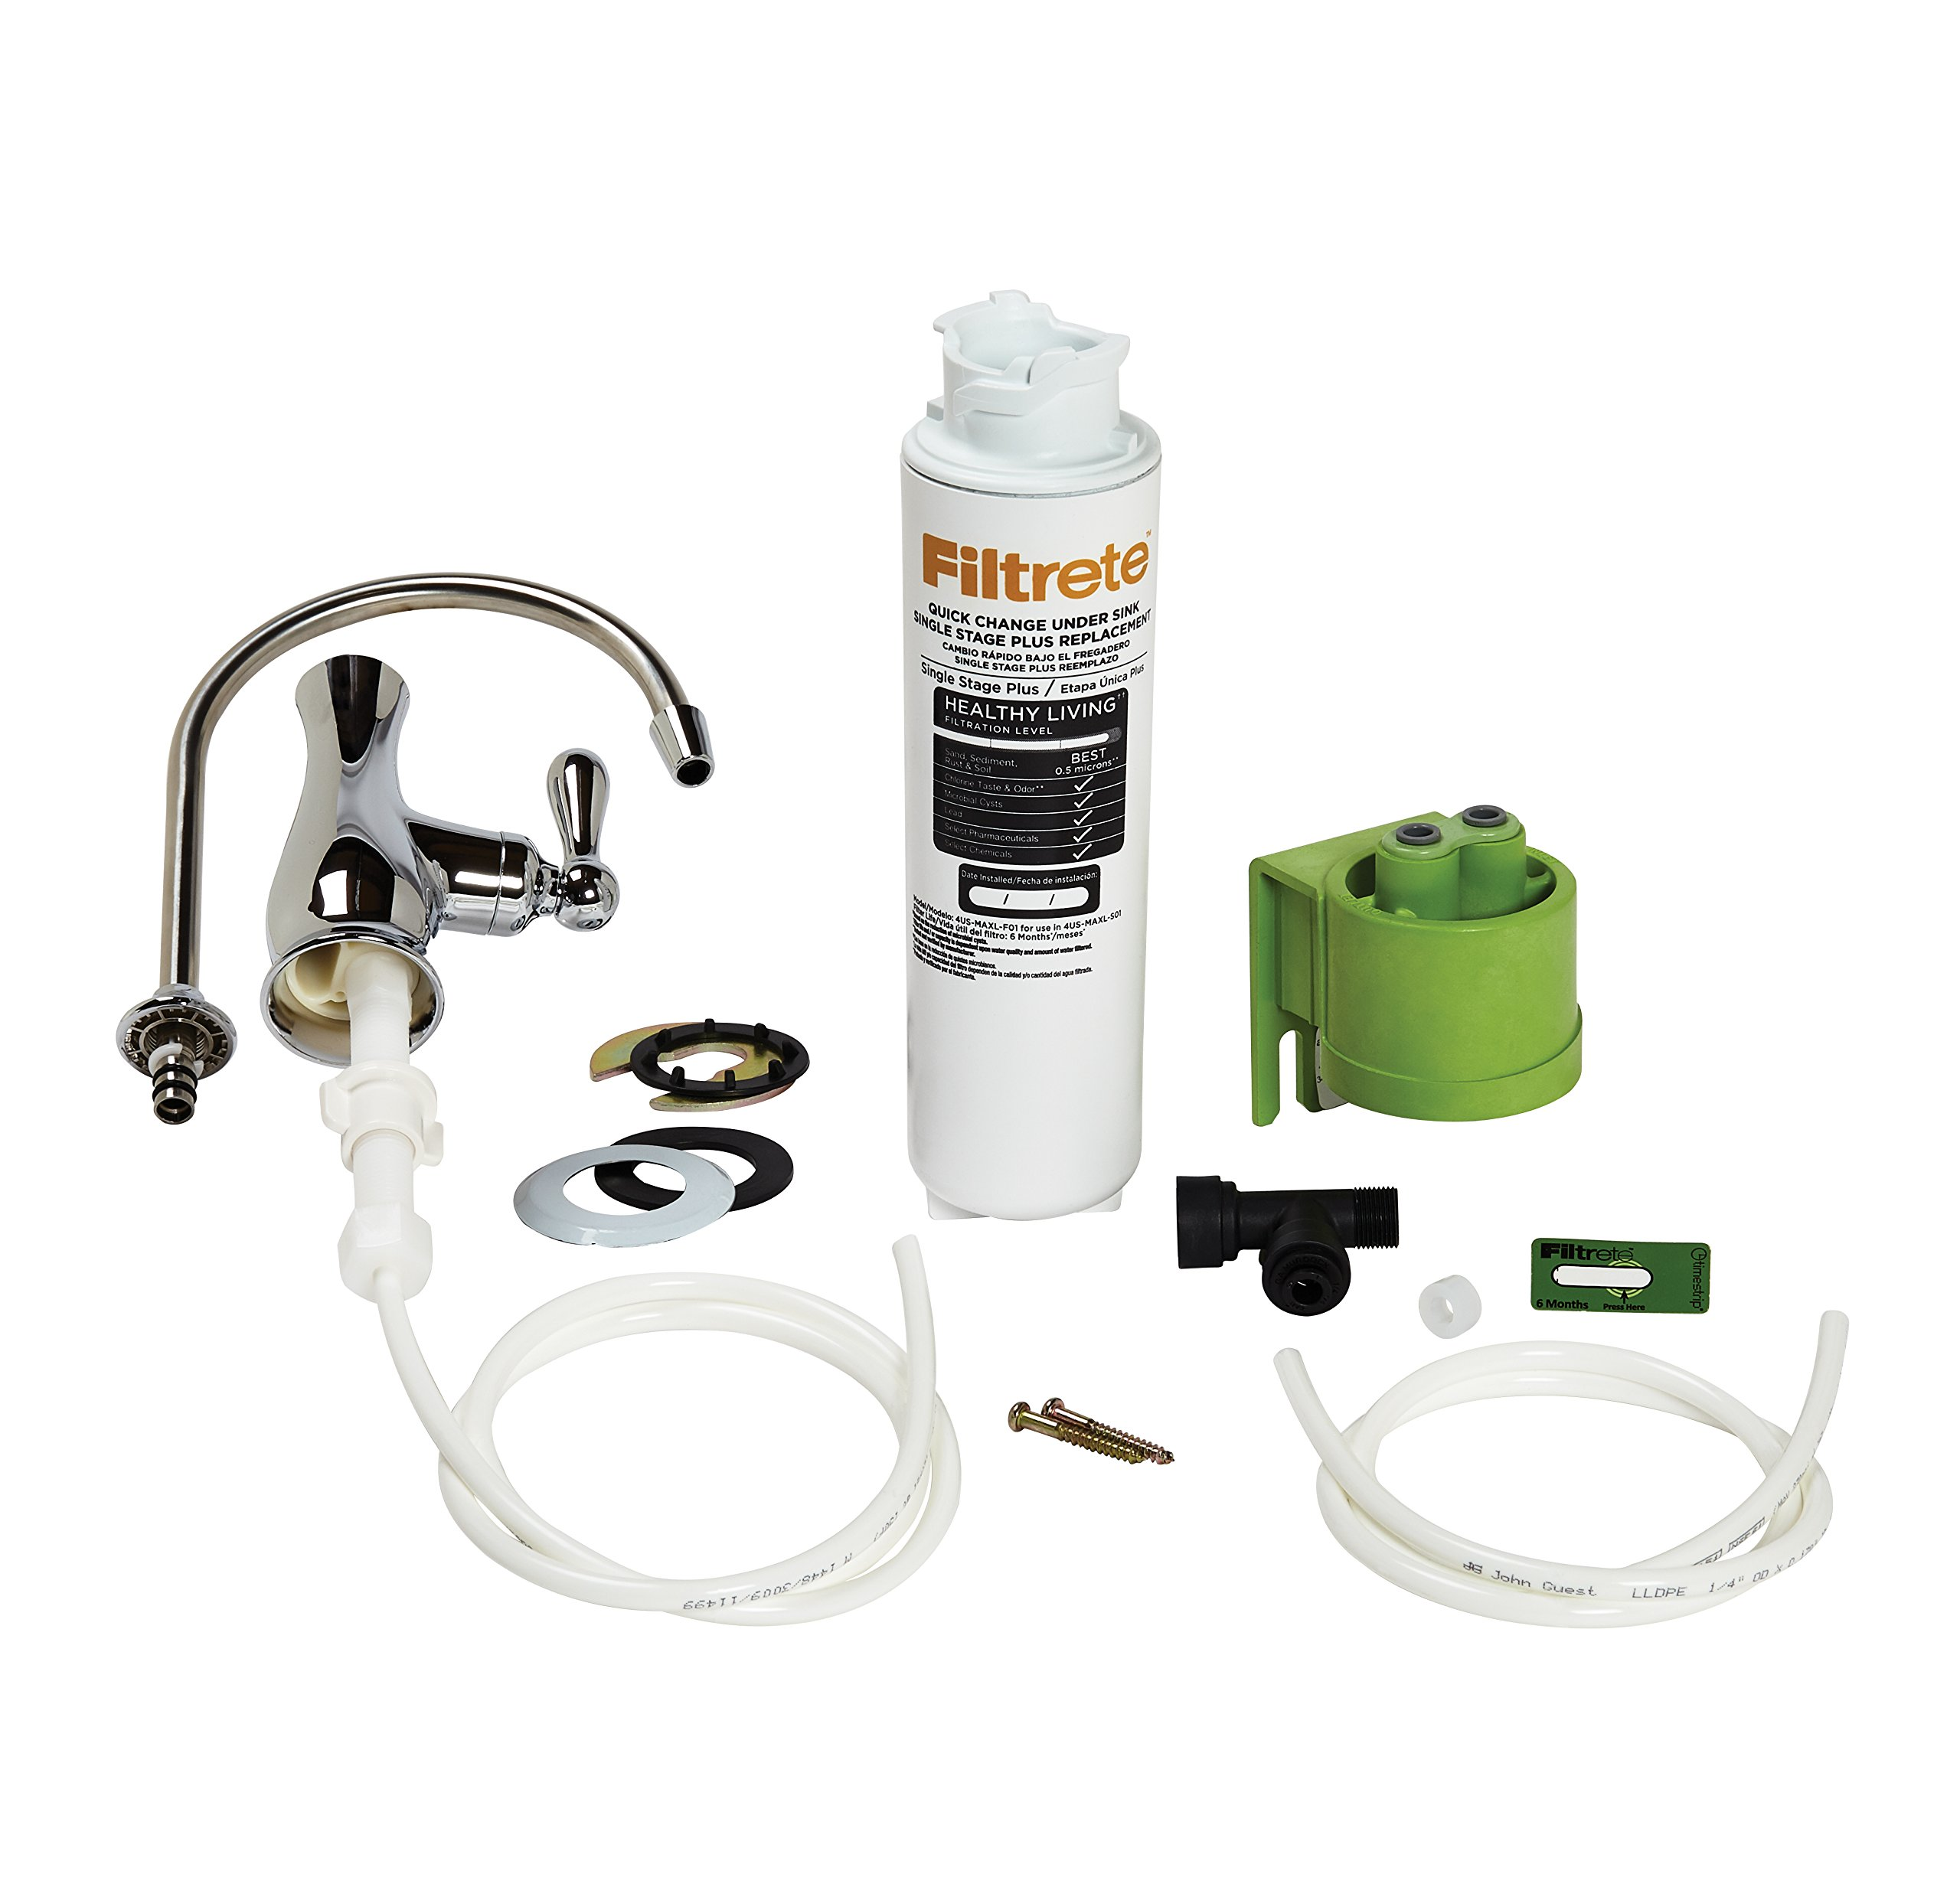 Filtrete High Performance Drinking Water System, Reduces 99% Lead, 1 System with Dedicated Faucet (4US-MAXL-S01)